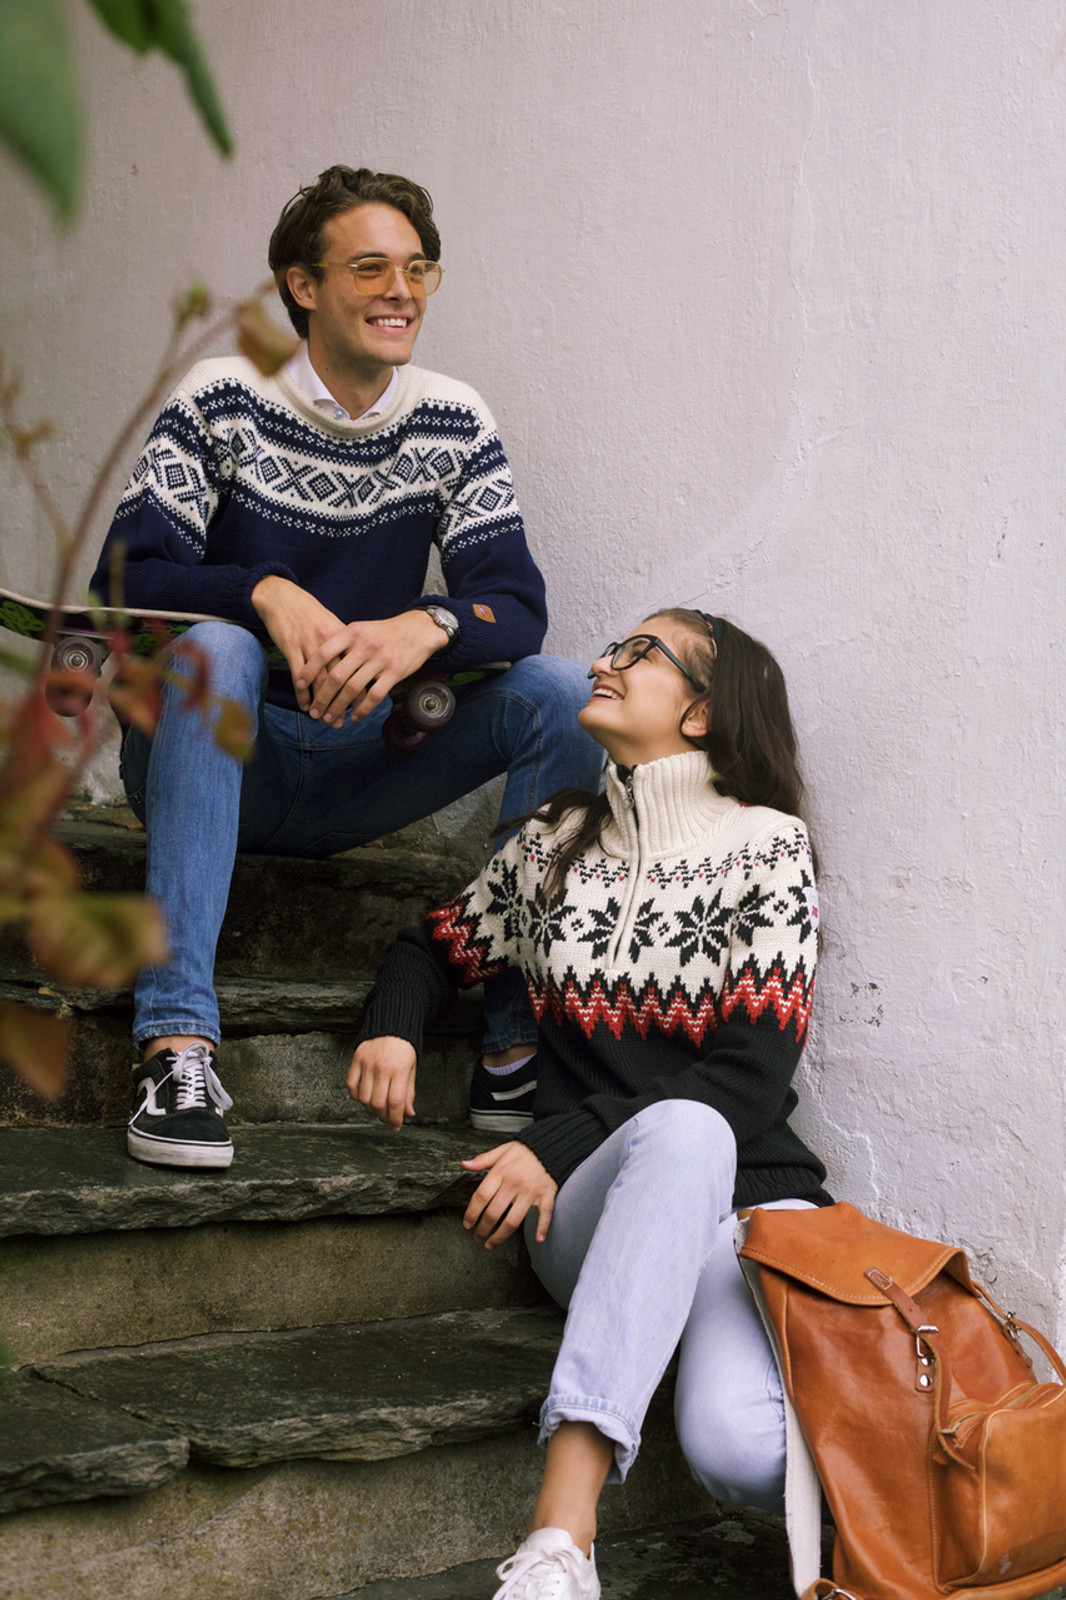 Woman wearing Dale of Norway Myking Ladies Sweater in Black/Raspberry/Off White, 93011-F, and man wearing Dale of Norway Cortina unisex pullover in Navy/Off White, 92521-C, sitting on stairs.